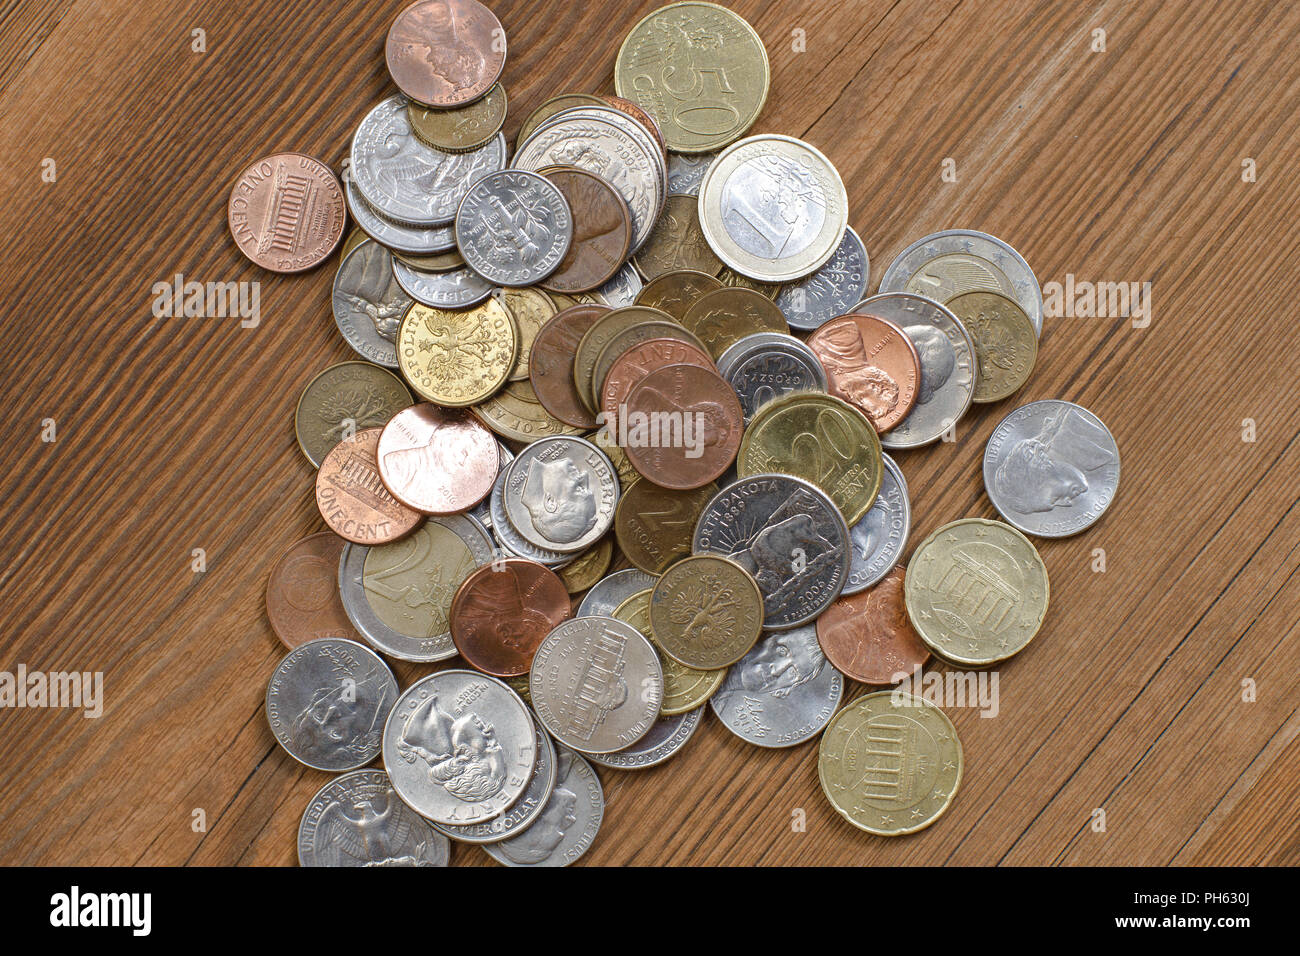 Money on old wooden surface copyspace ready for edit as money themed cover - Stock Image